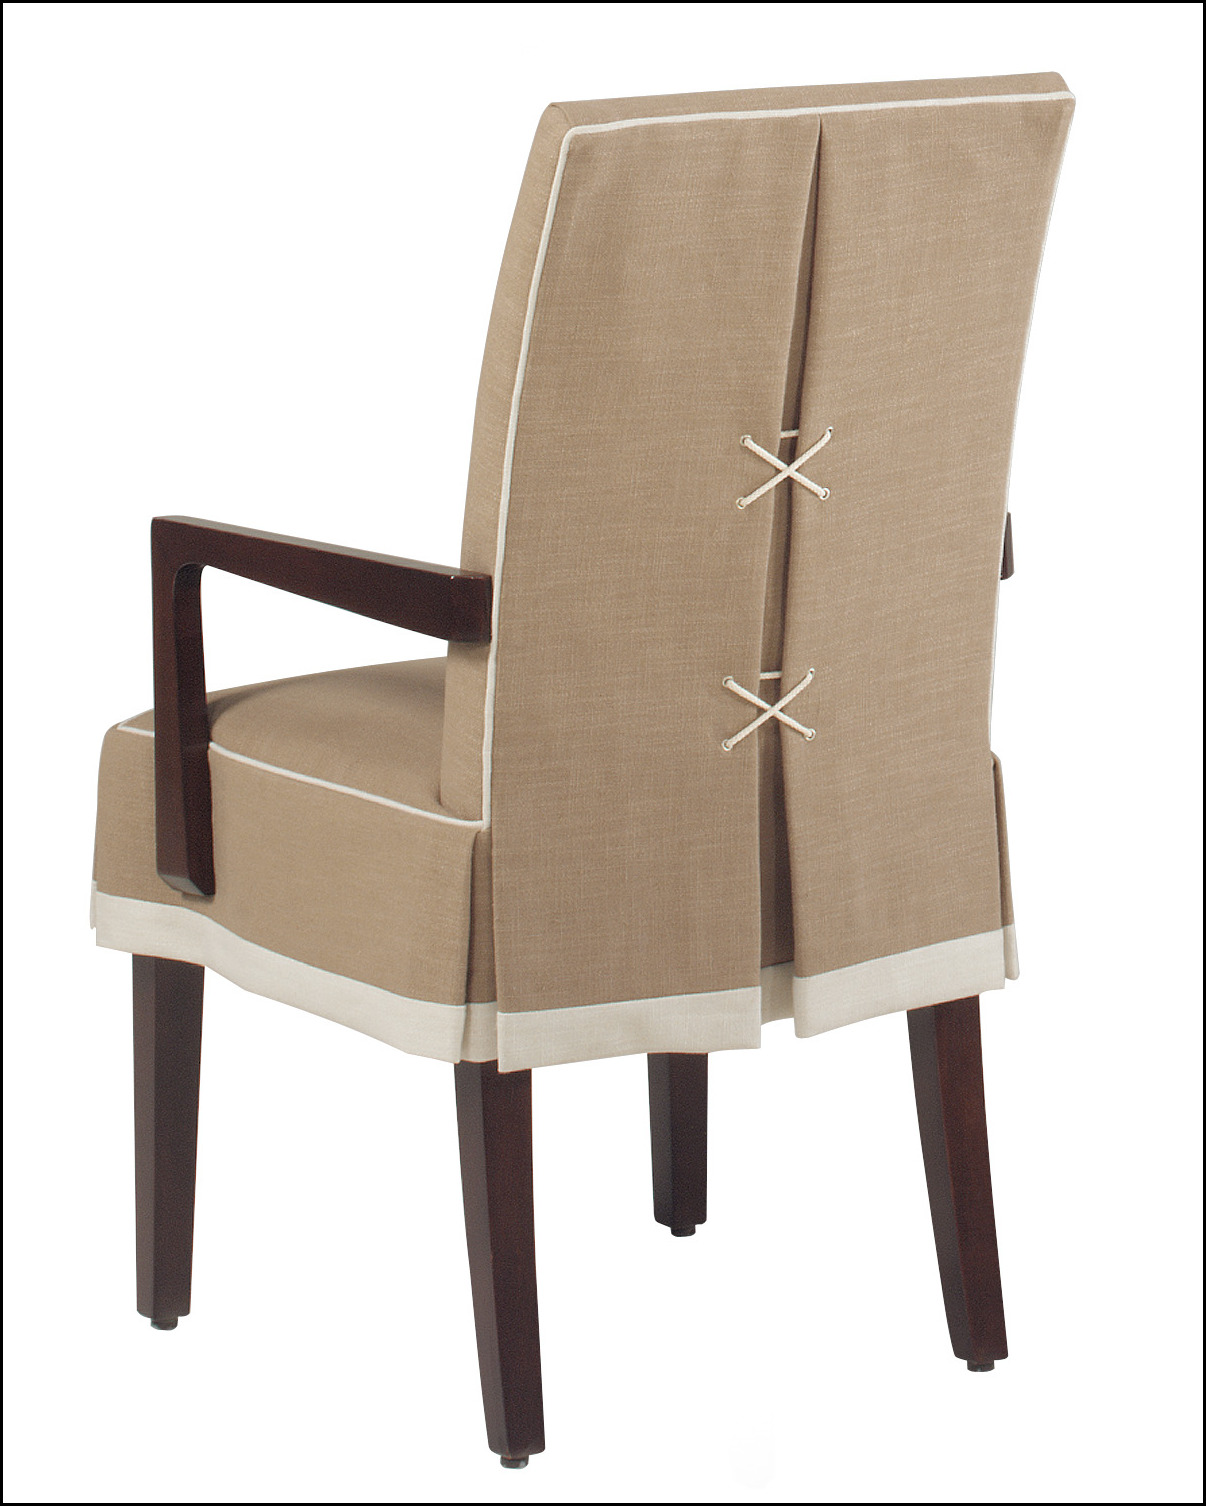 dining room chair covers with arms heavy duty industrial chairs area slipcovers for